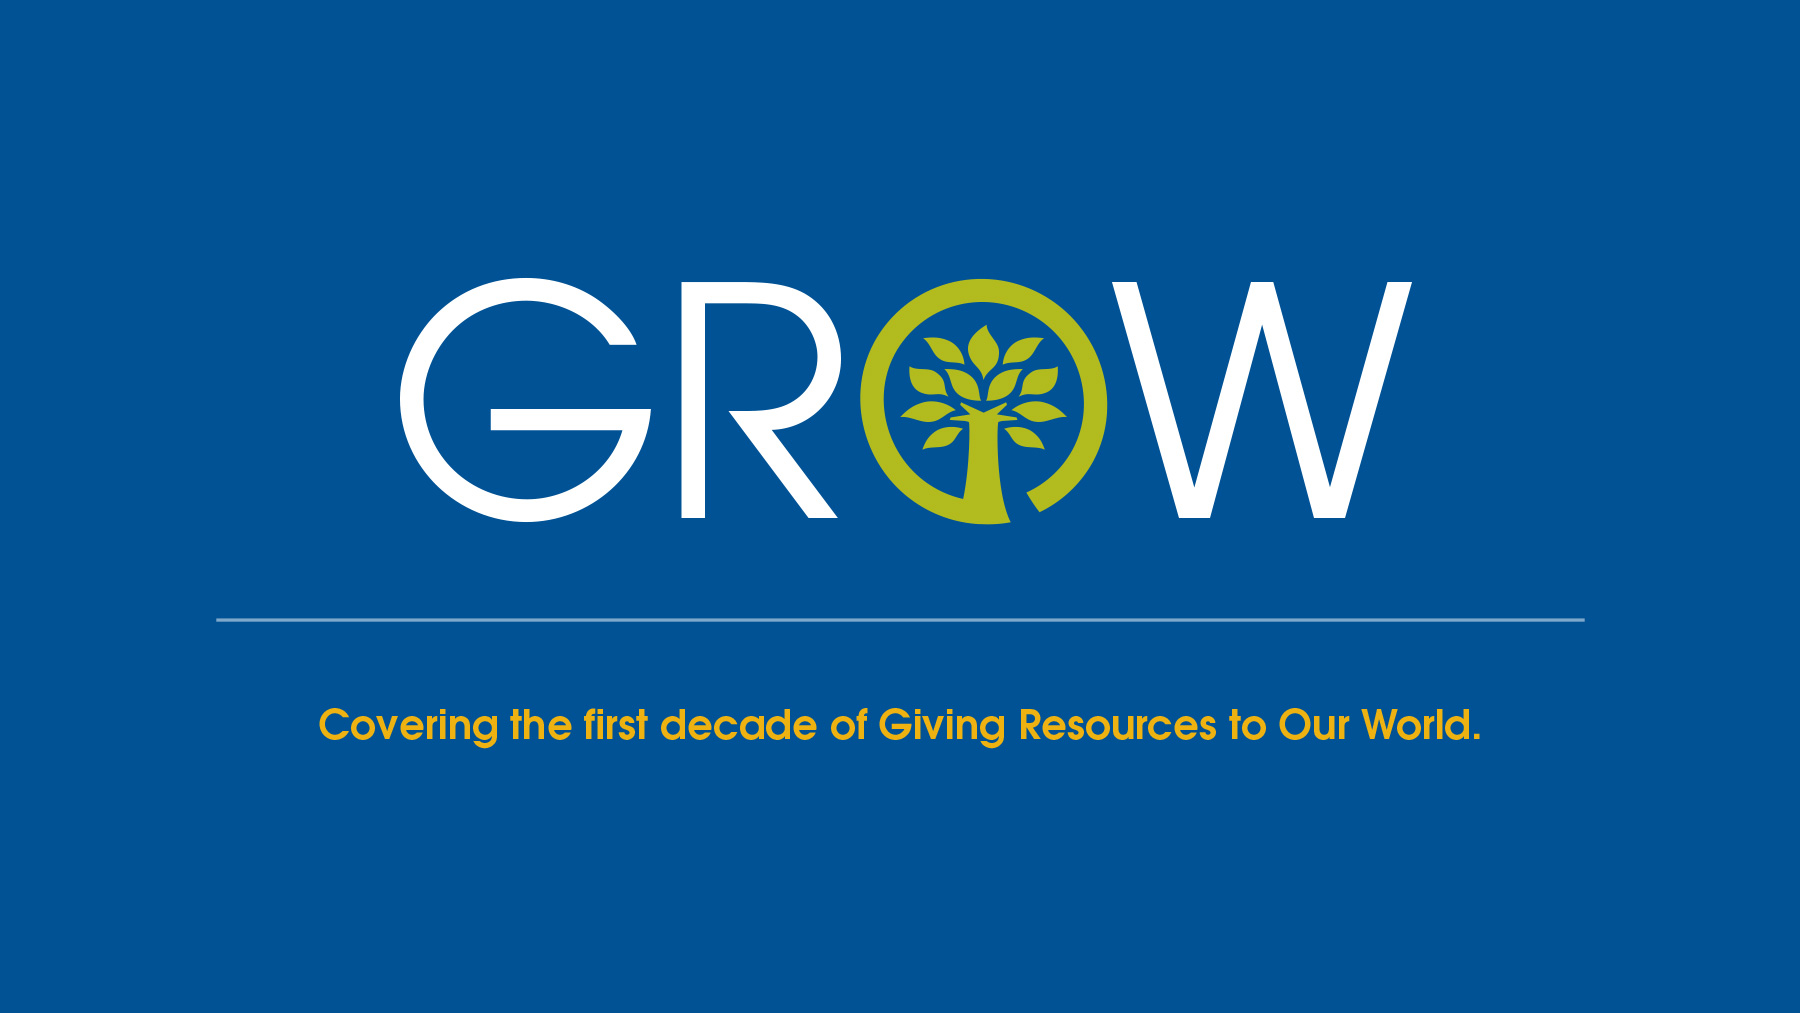 GROW logo and tagline